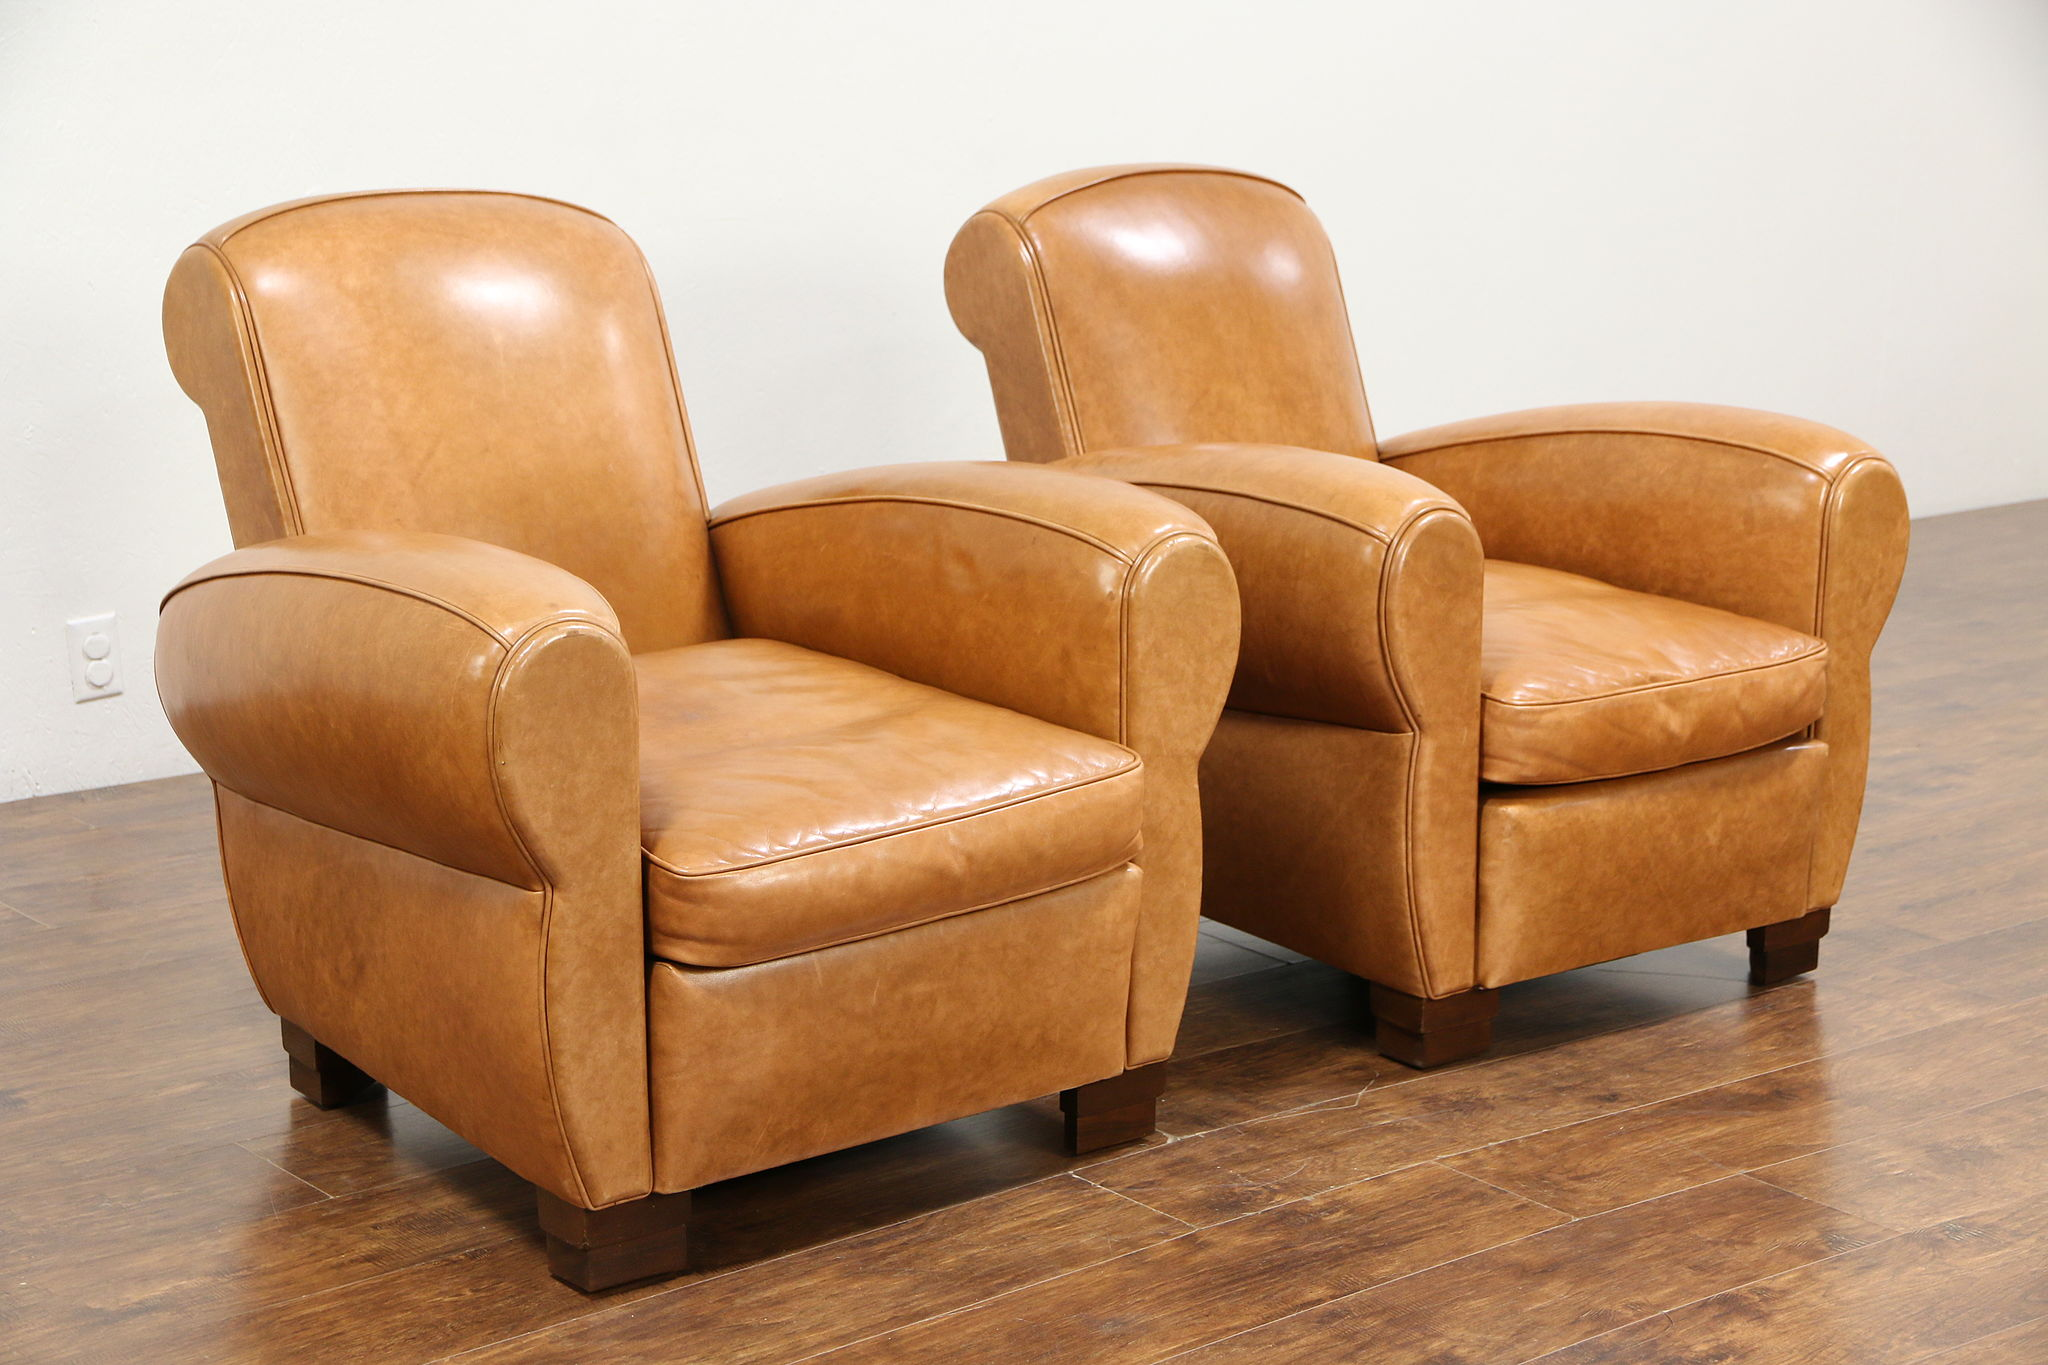 art deco era furniture. Pair Of Vintage French Art Deco Style Leather Club Chairs Era Furniture